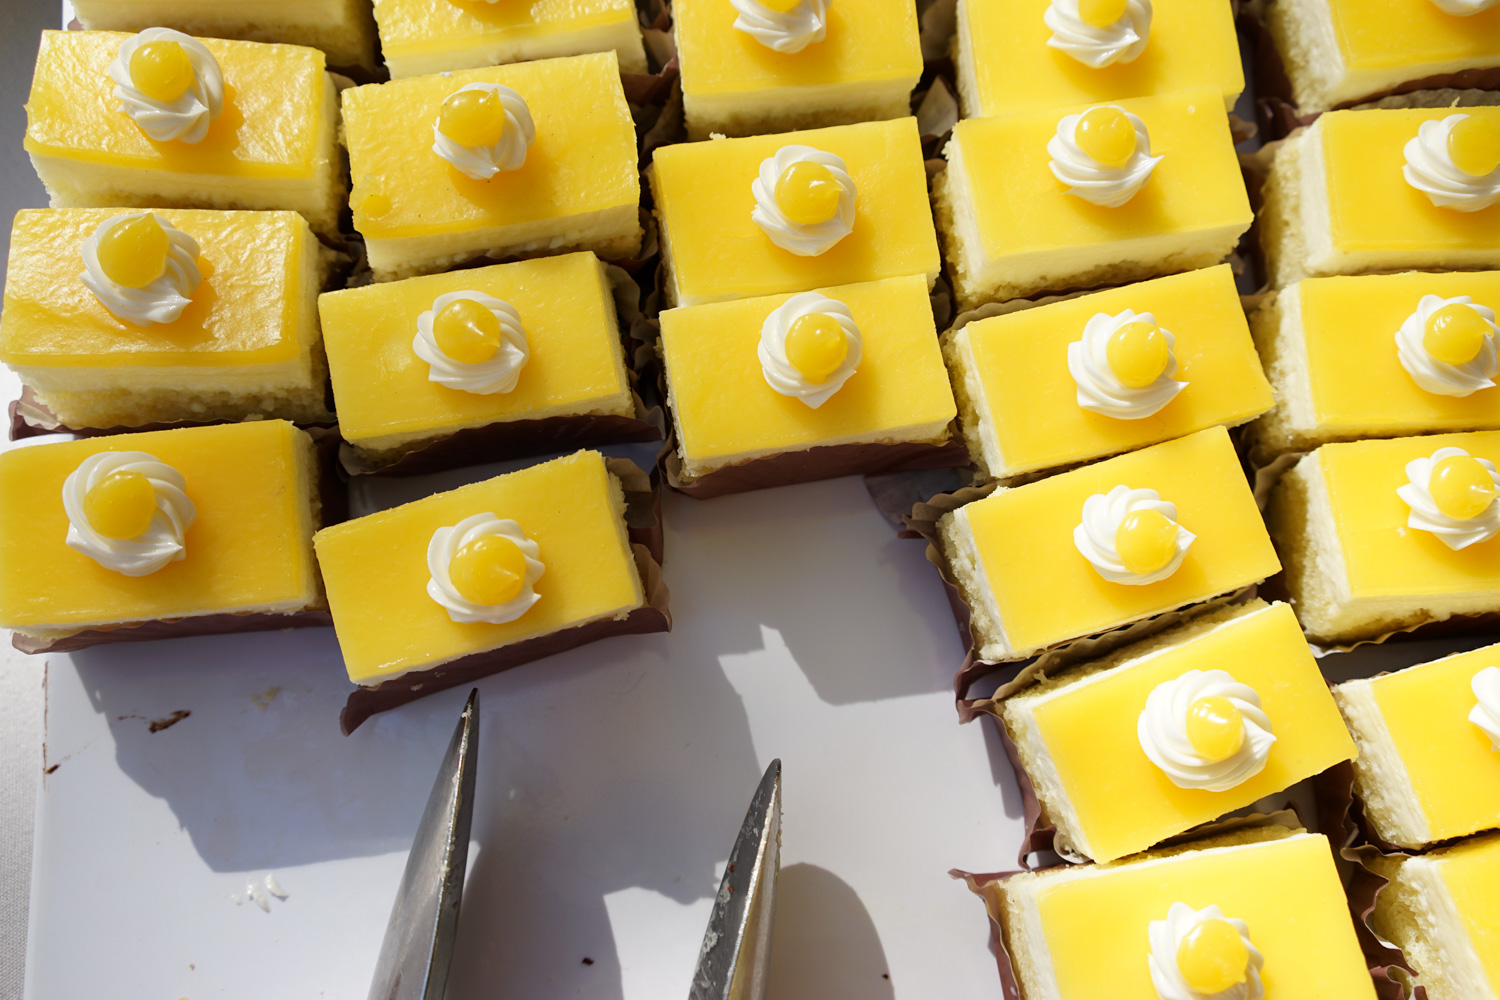 Yummy cakes at the demo day event organised by Google catering team